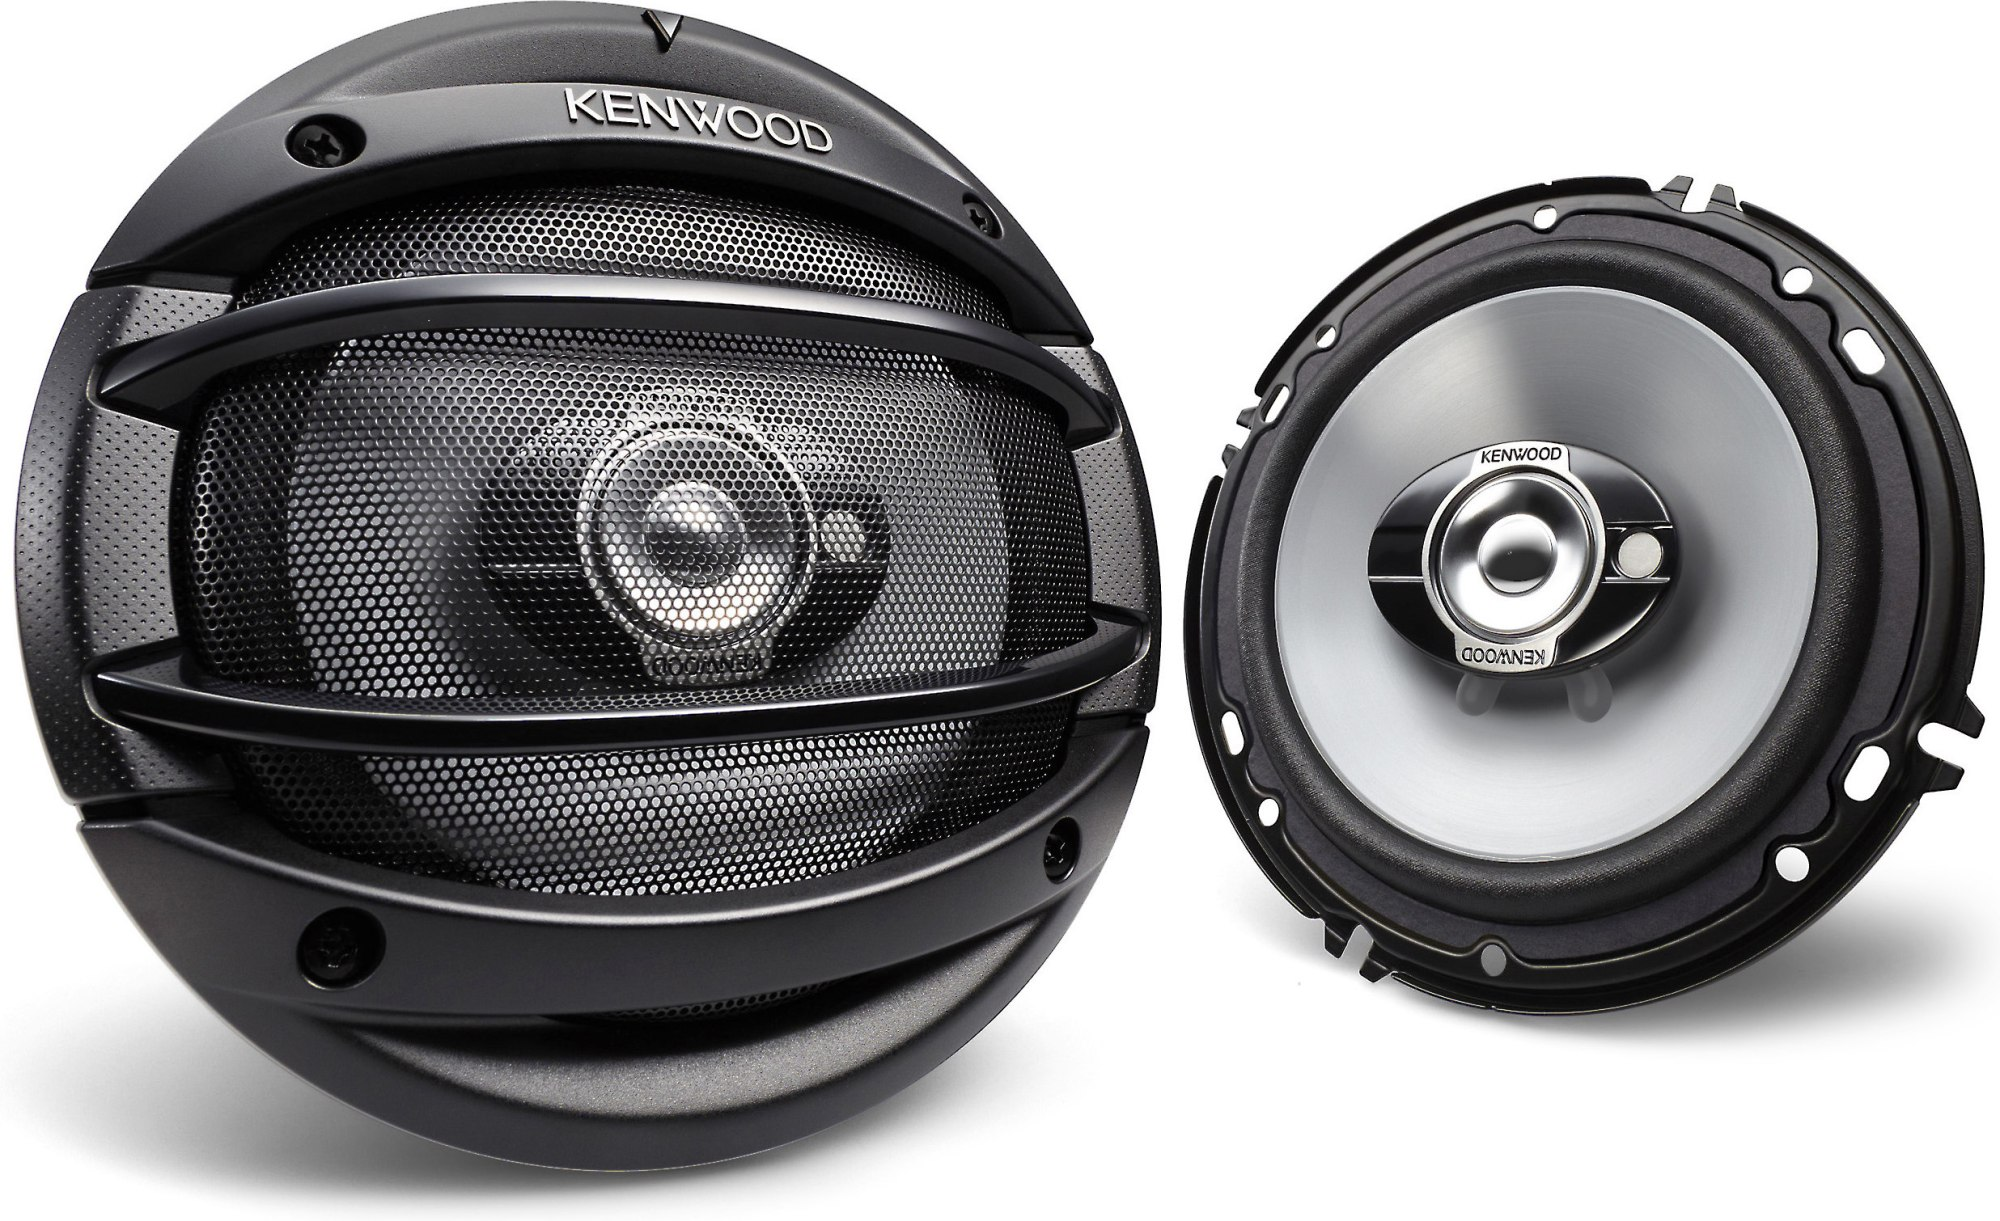 hight resolution of kenwood kfc 1664s 6 1 2 3 way car speakers also fit 6 3 4 openings at crutchfield